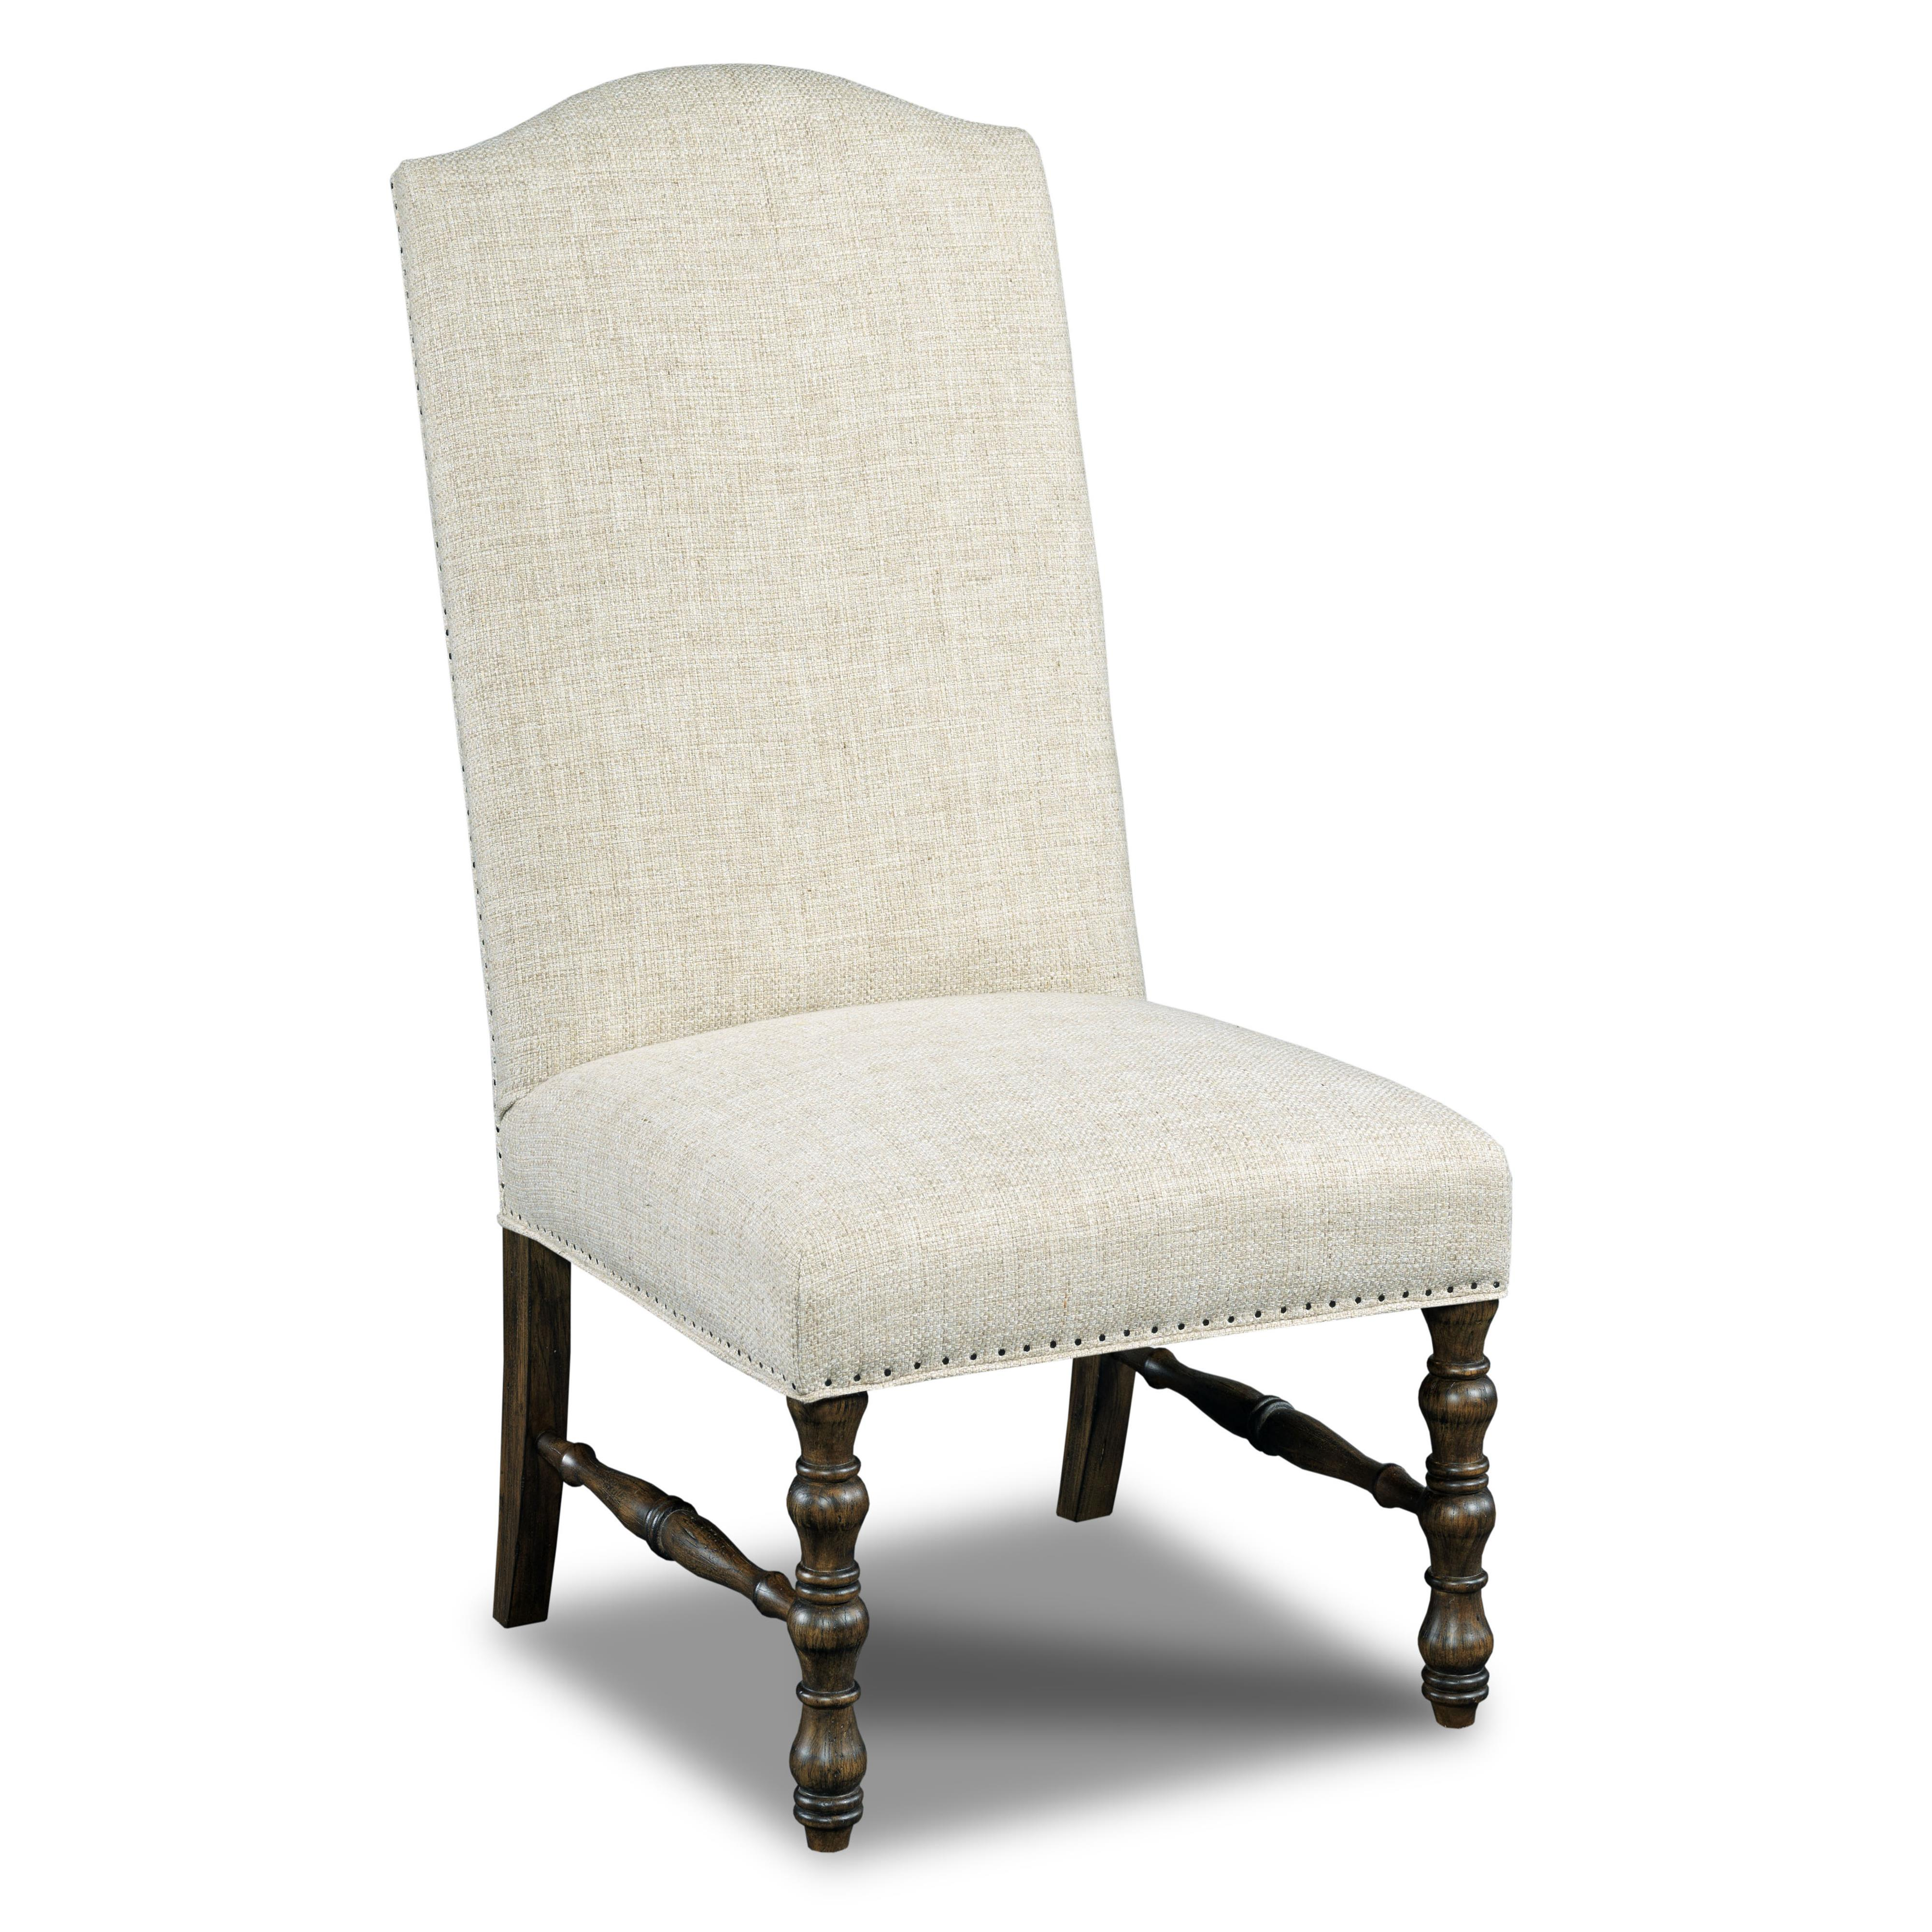 Hamilton Home Dining Chairs Upholstered Armless Dining Chair - Item Number: 300-350127